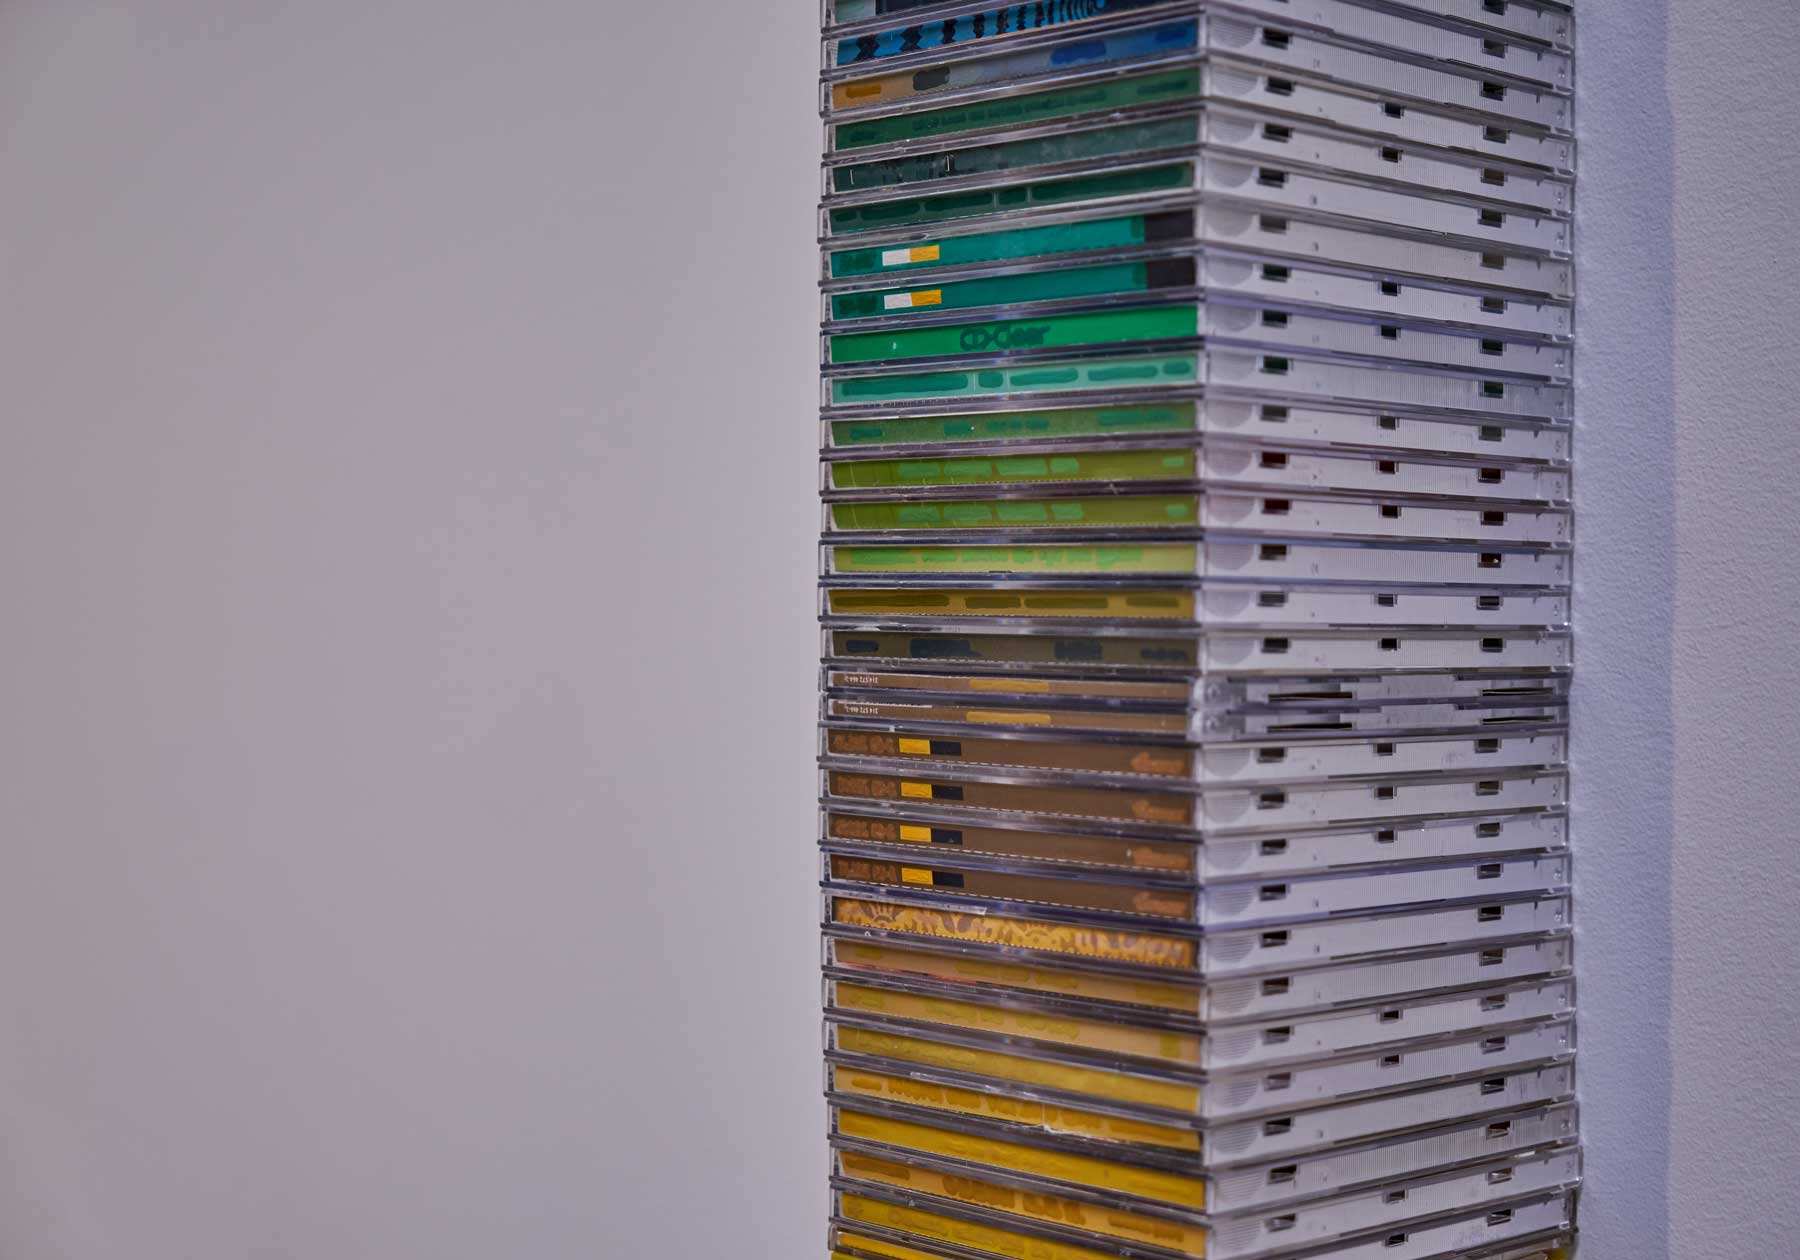 """Eleanor King ,  Redacted Stack , 2014, Plastic CD cases, paper, acrylic, 132"""" x 5"""" x 4 1/2"""" (335,3 x 12,7 x 11,4 cm) (Detail)"""